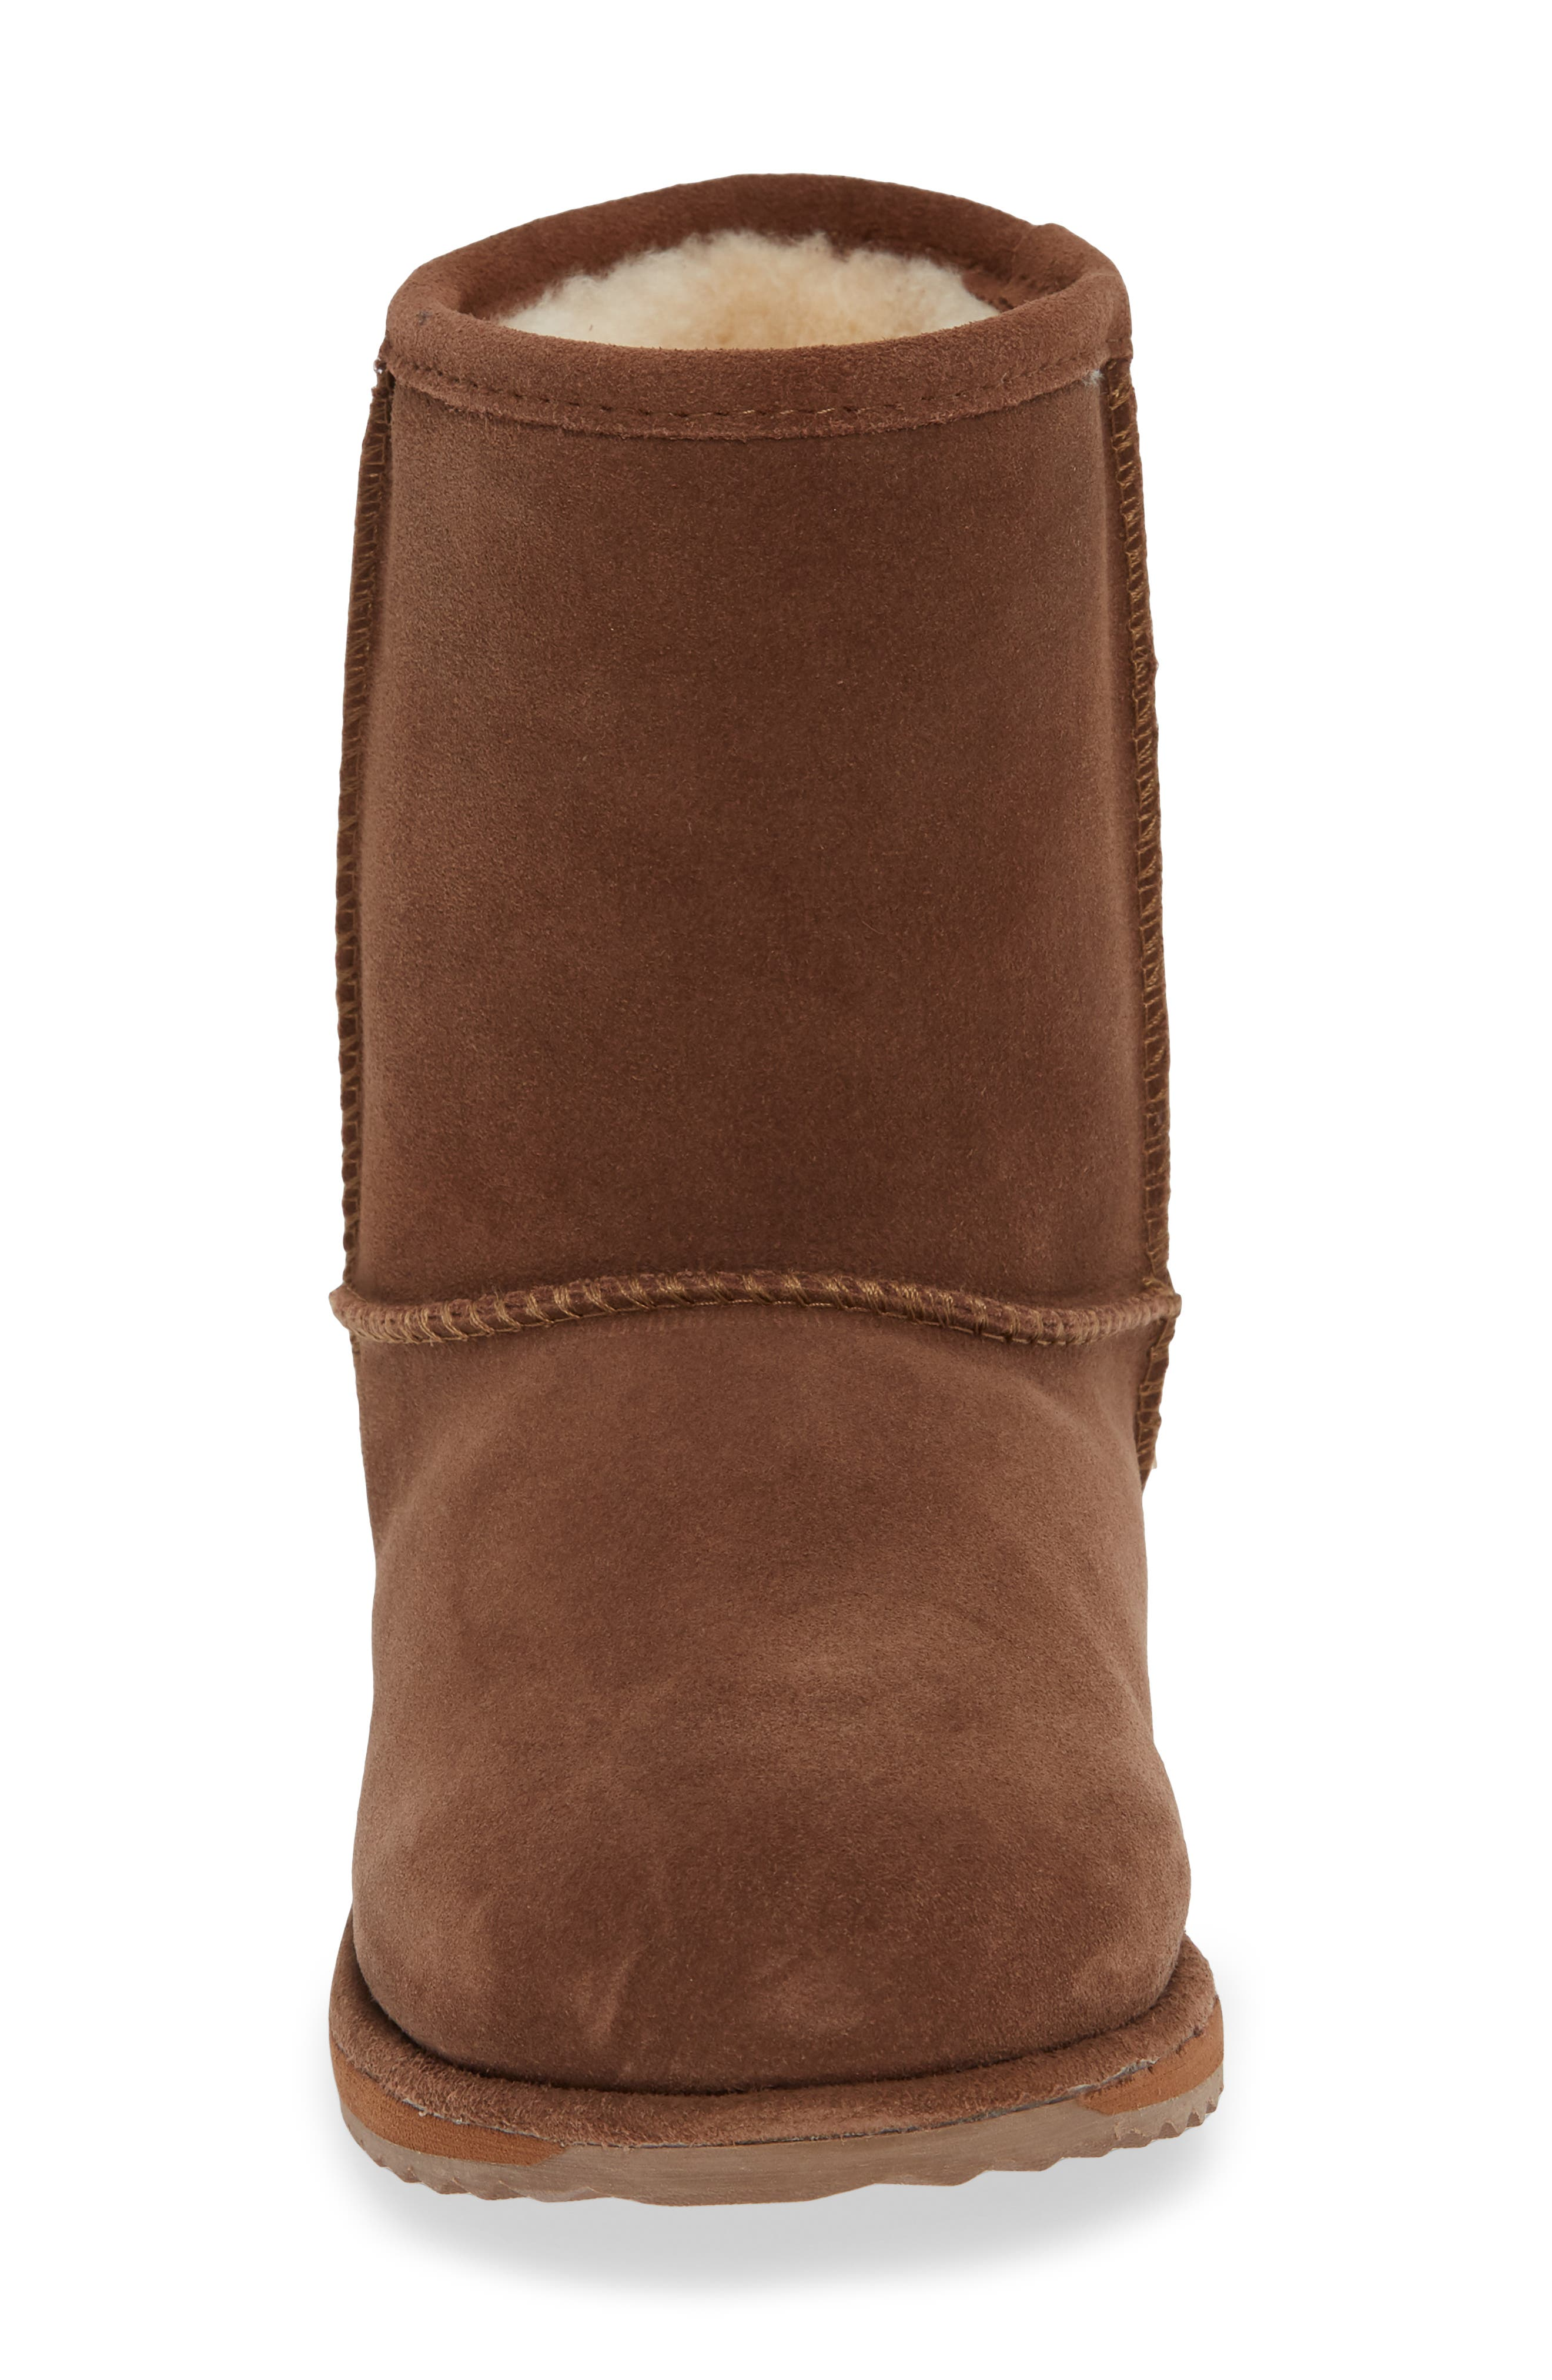 Brumby Waterproof Boot,                             Alternate thumbnail 4, color,                             OAK BROWN